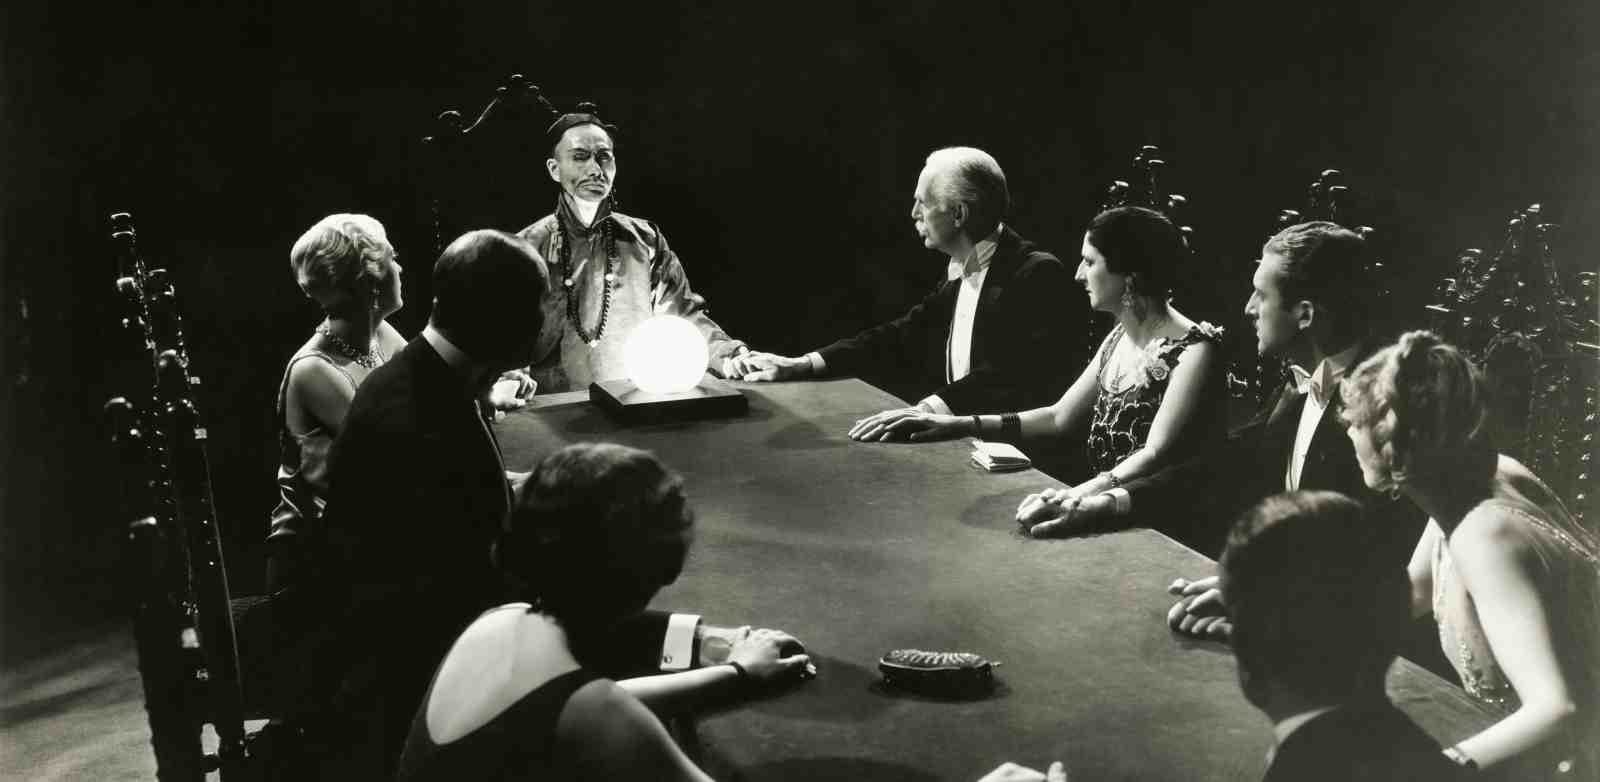 a seance from the 1920s